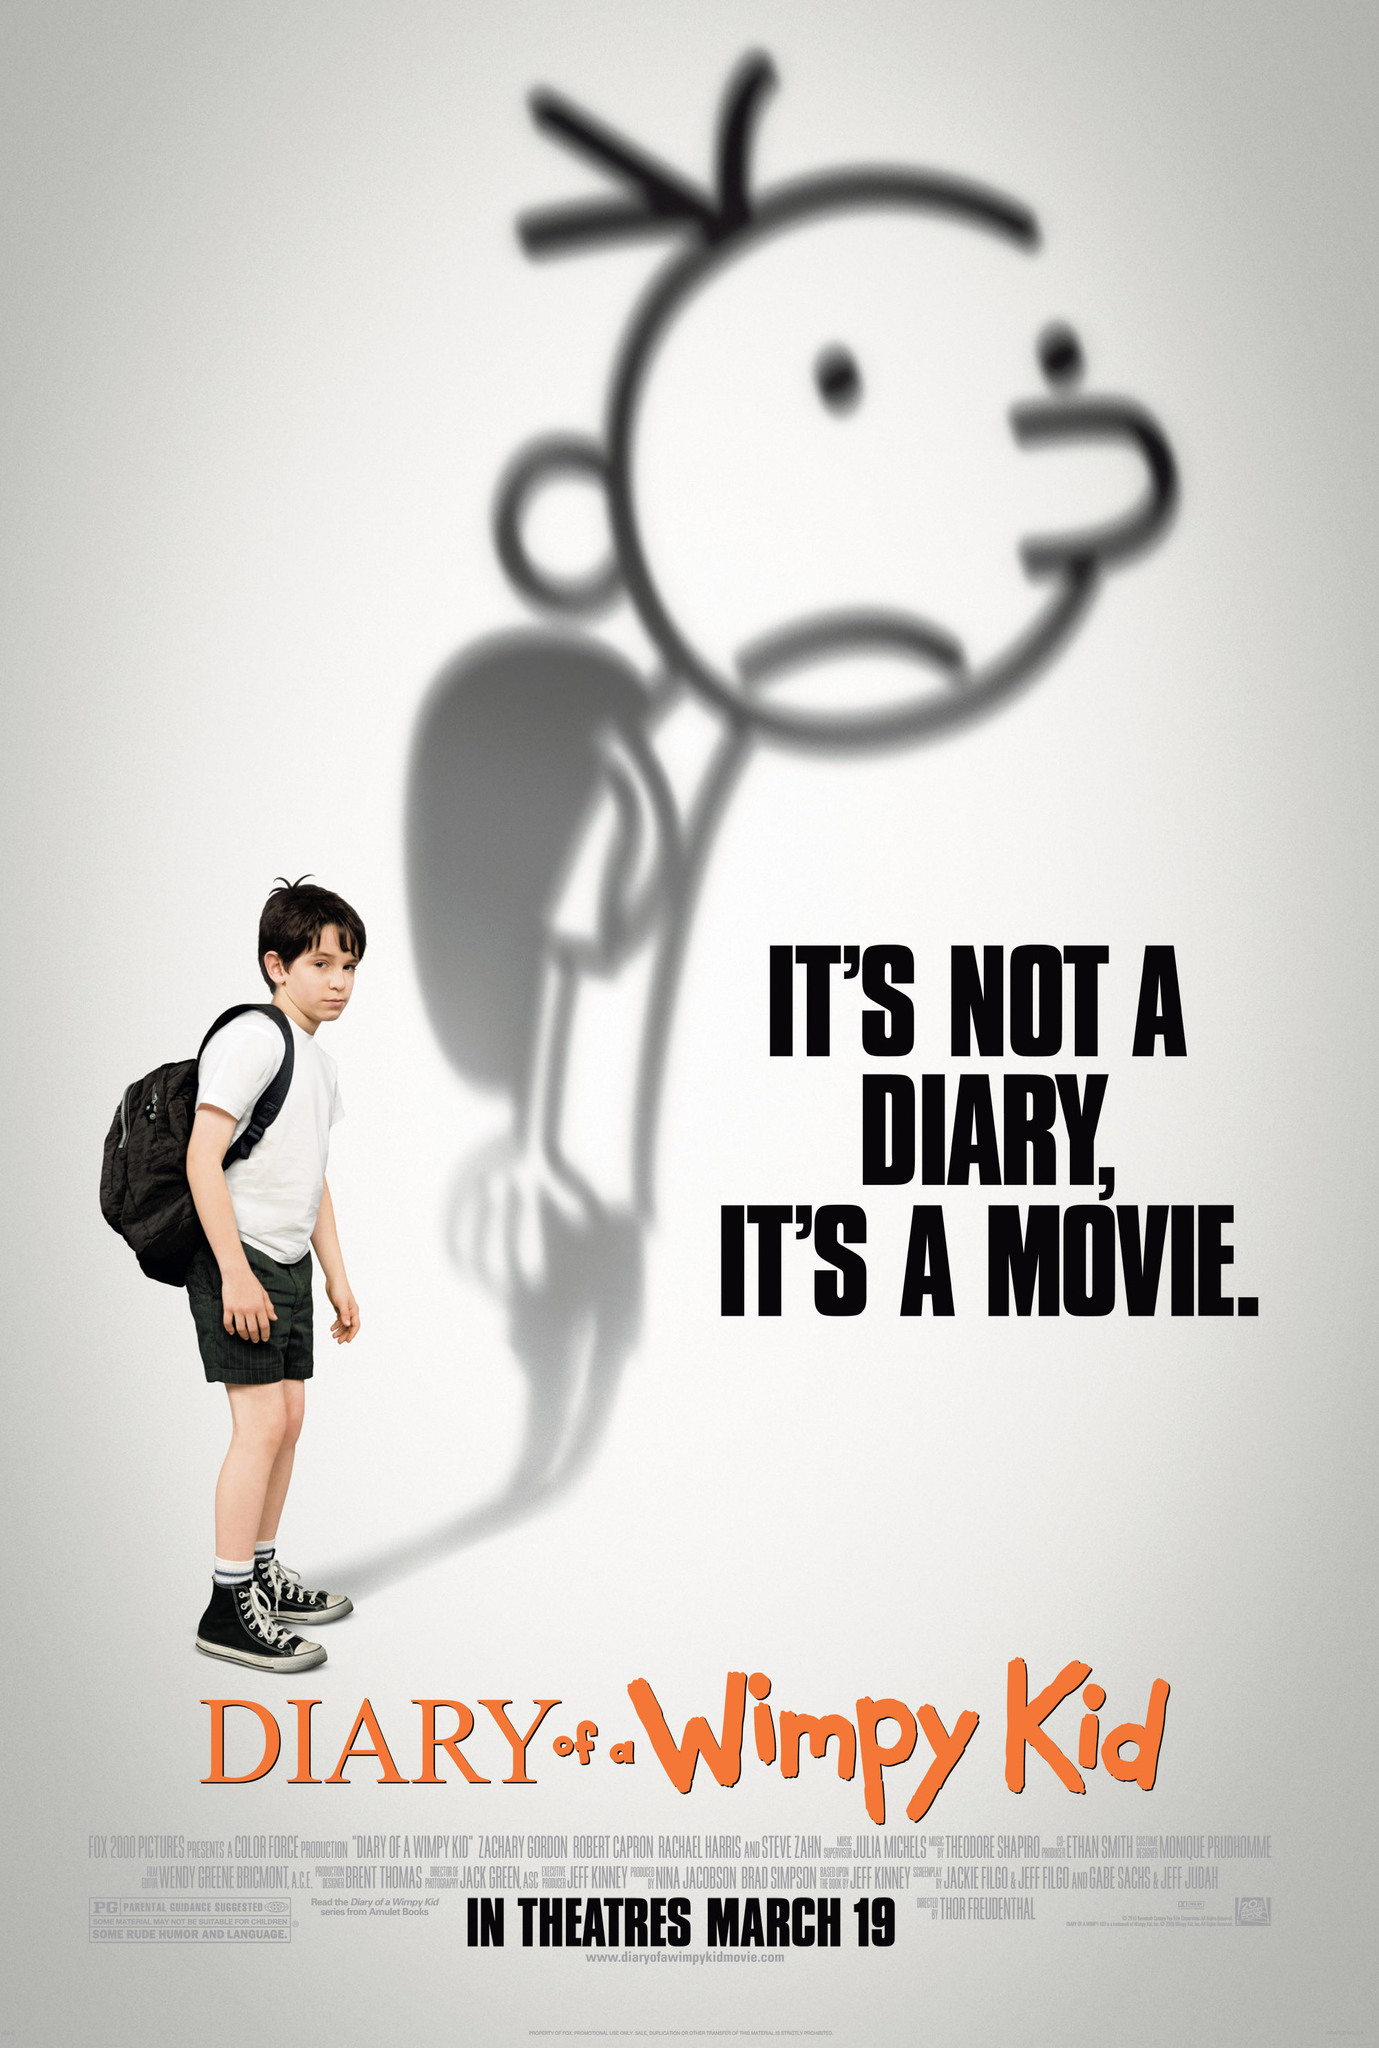 File:Diary if a Wimpy Kid movie poster.jpg